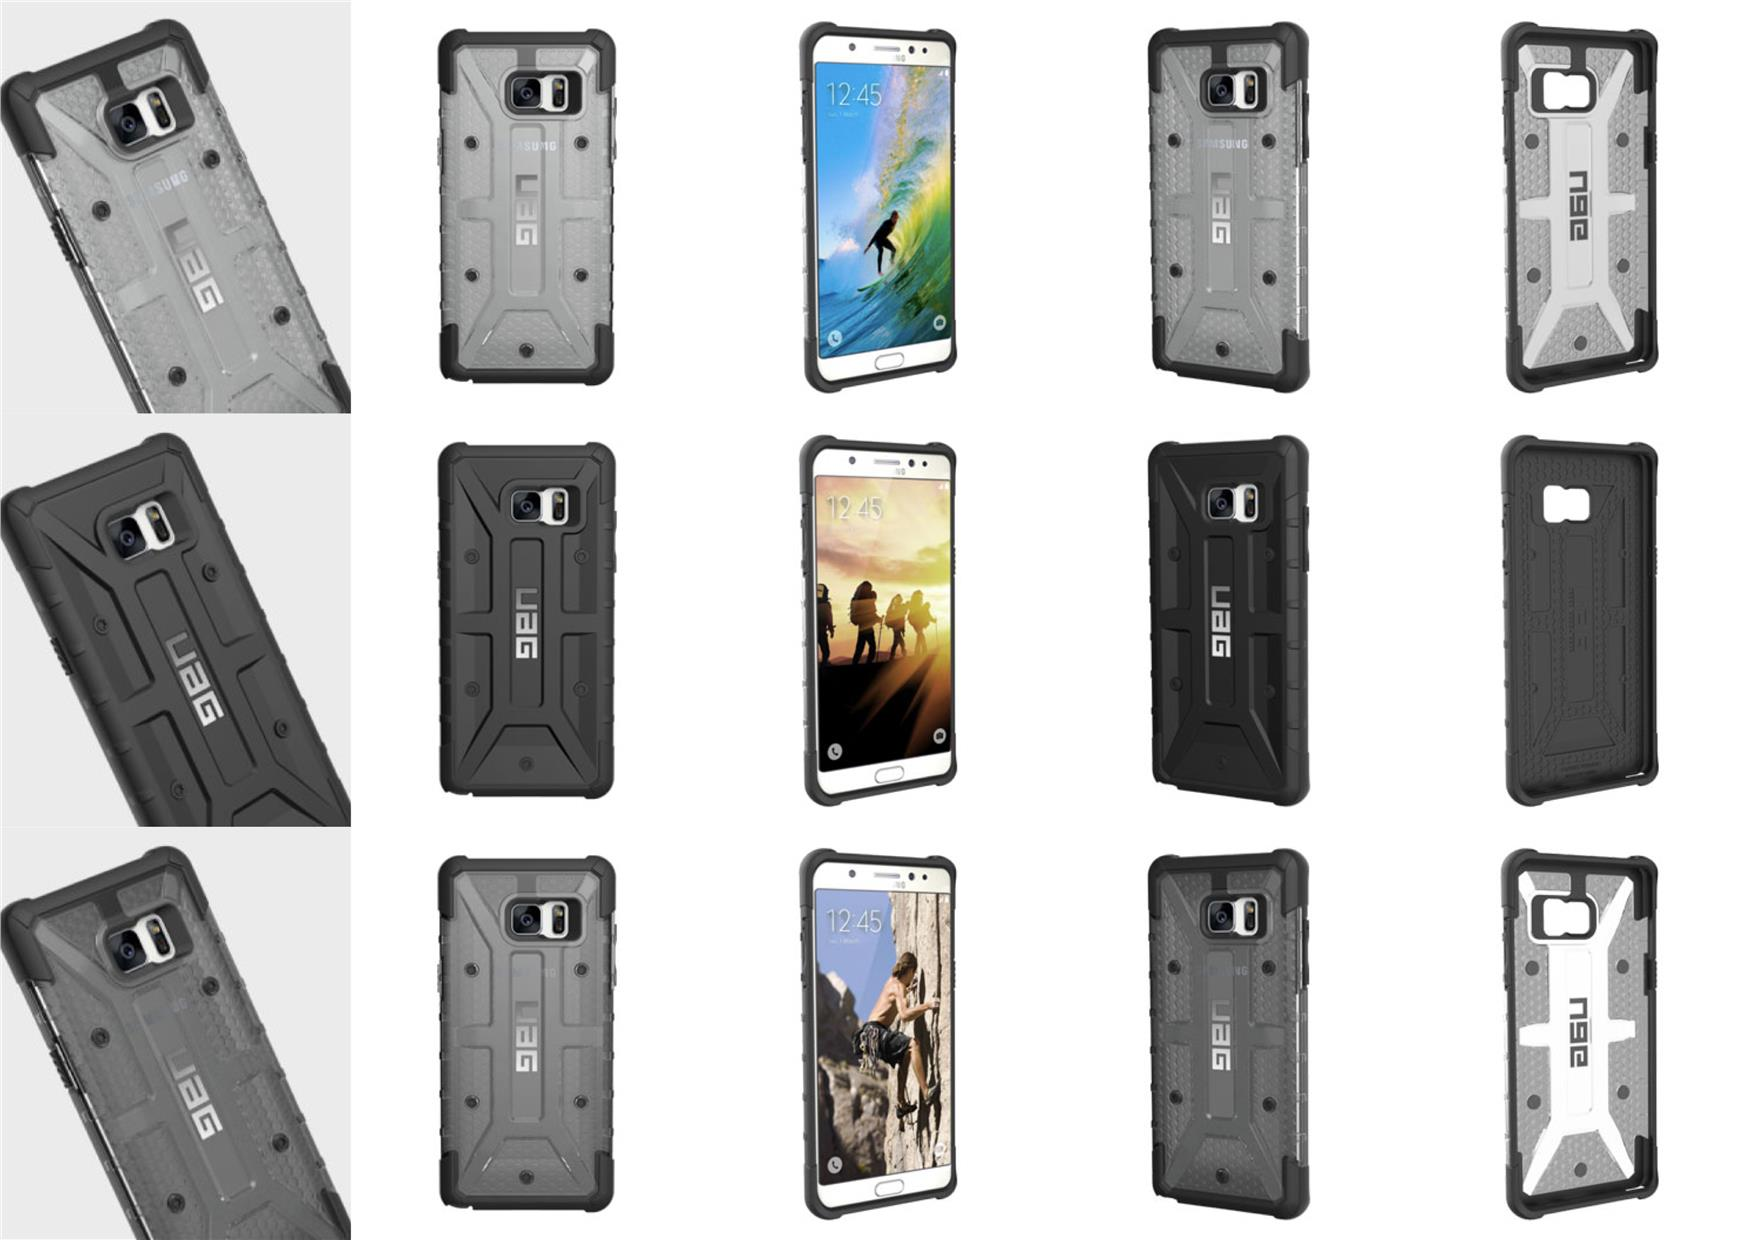 Samsung Galaxy Note 7 Original UAG Urban Armor Gear Protective Case